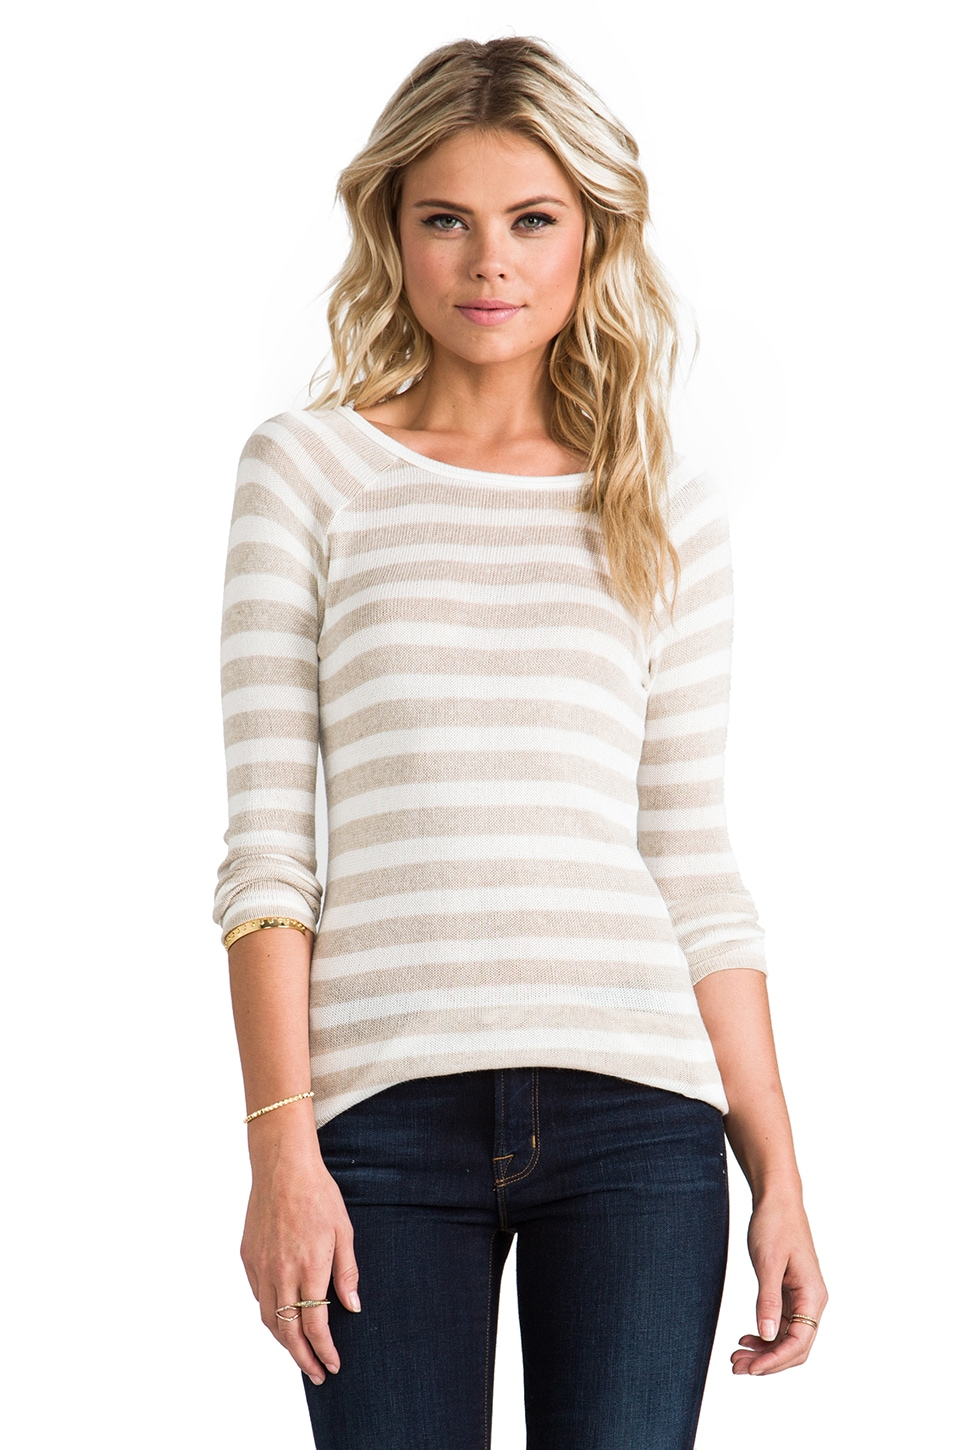 Soft Joie Dayla Stripe Top in Natural/Porcelain